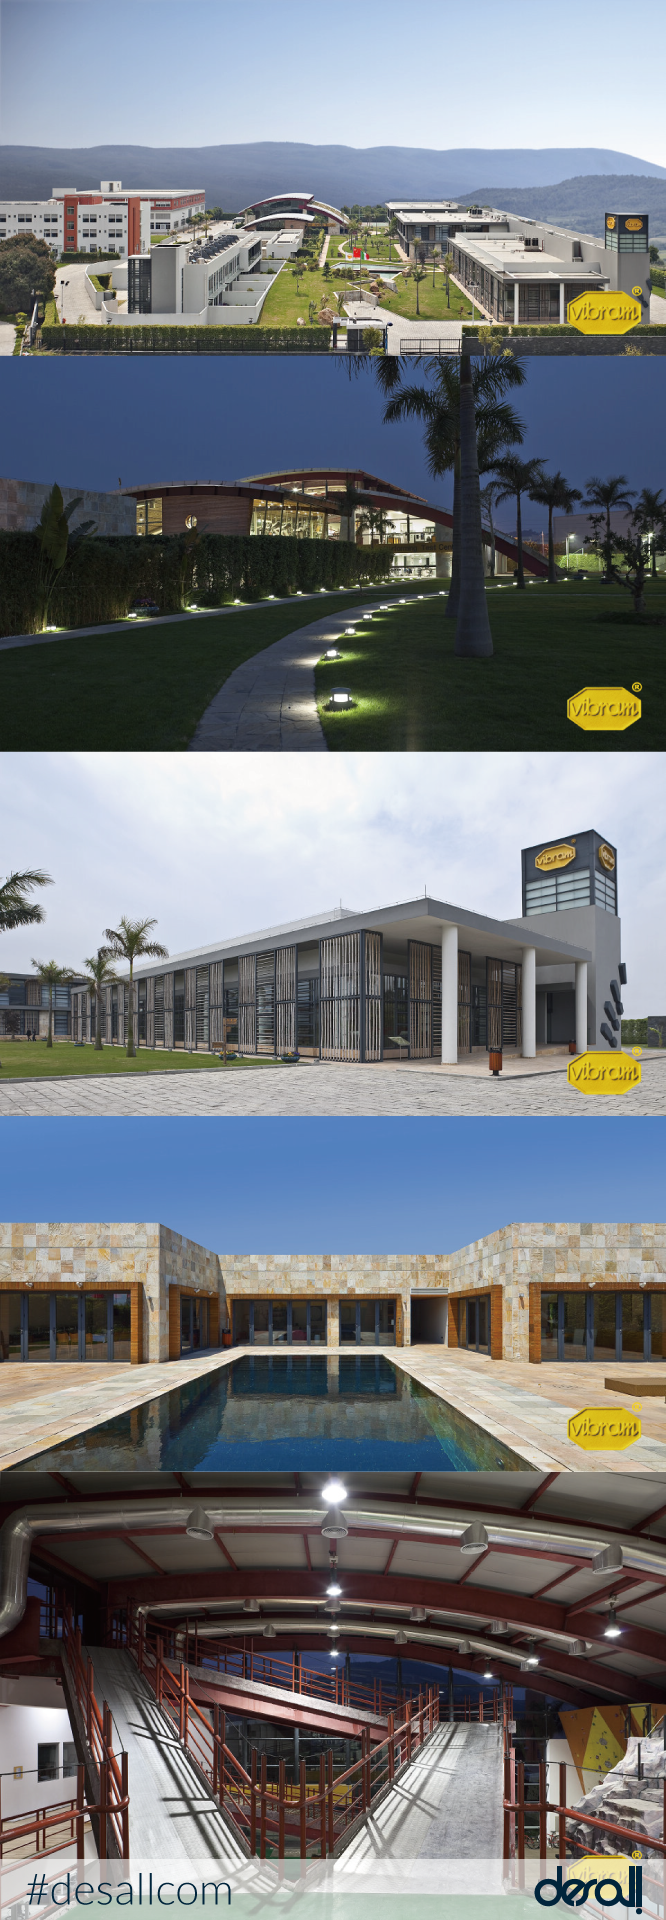 Vibram_Technological_Center_BLOG-666x1920_img